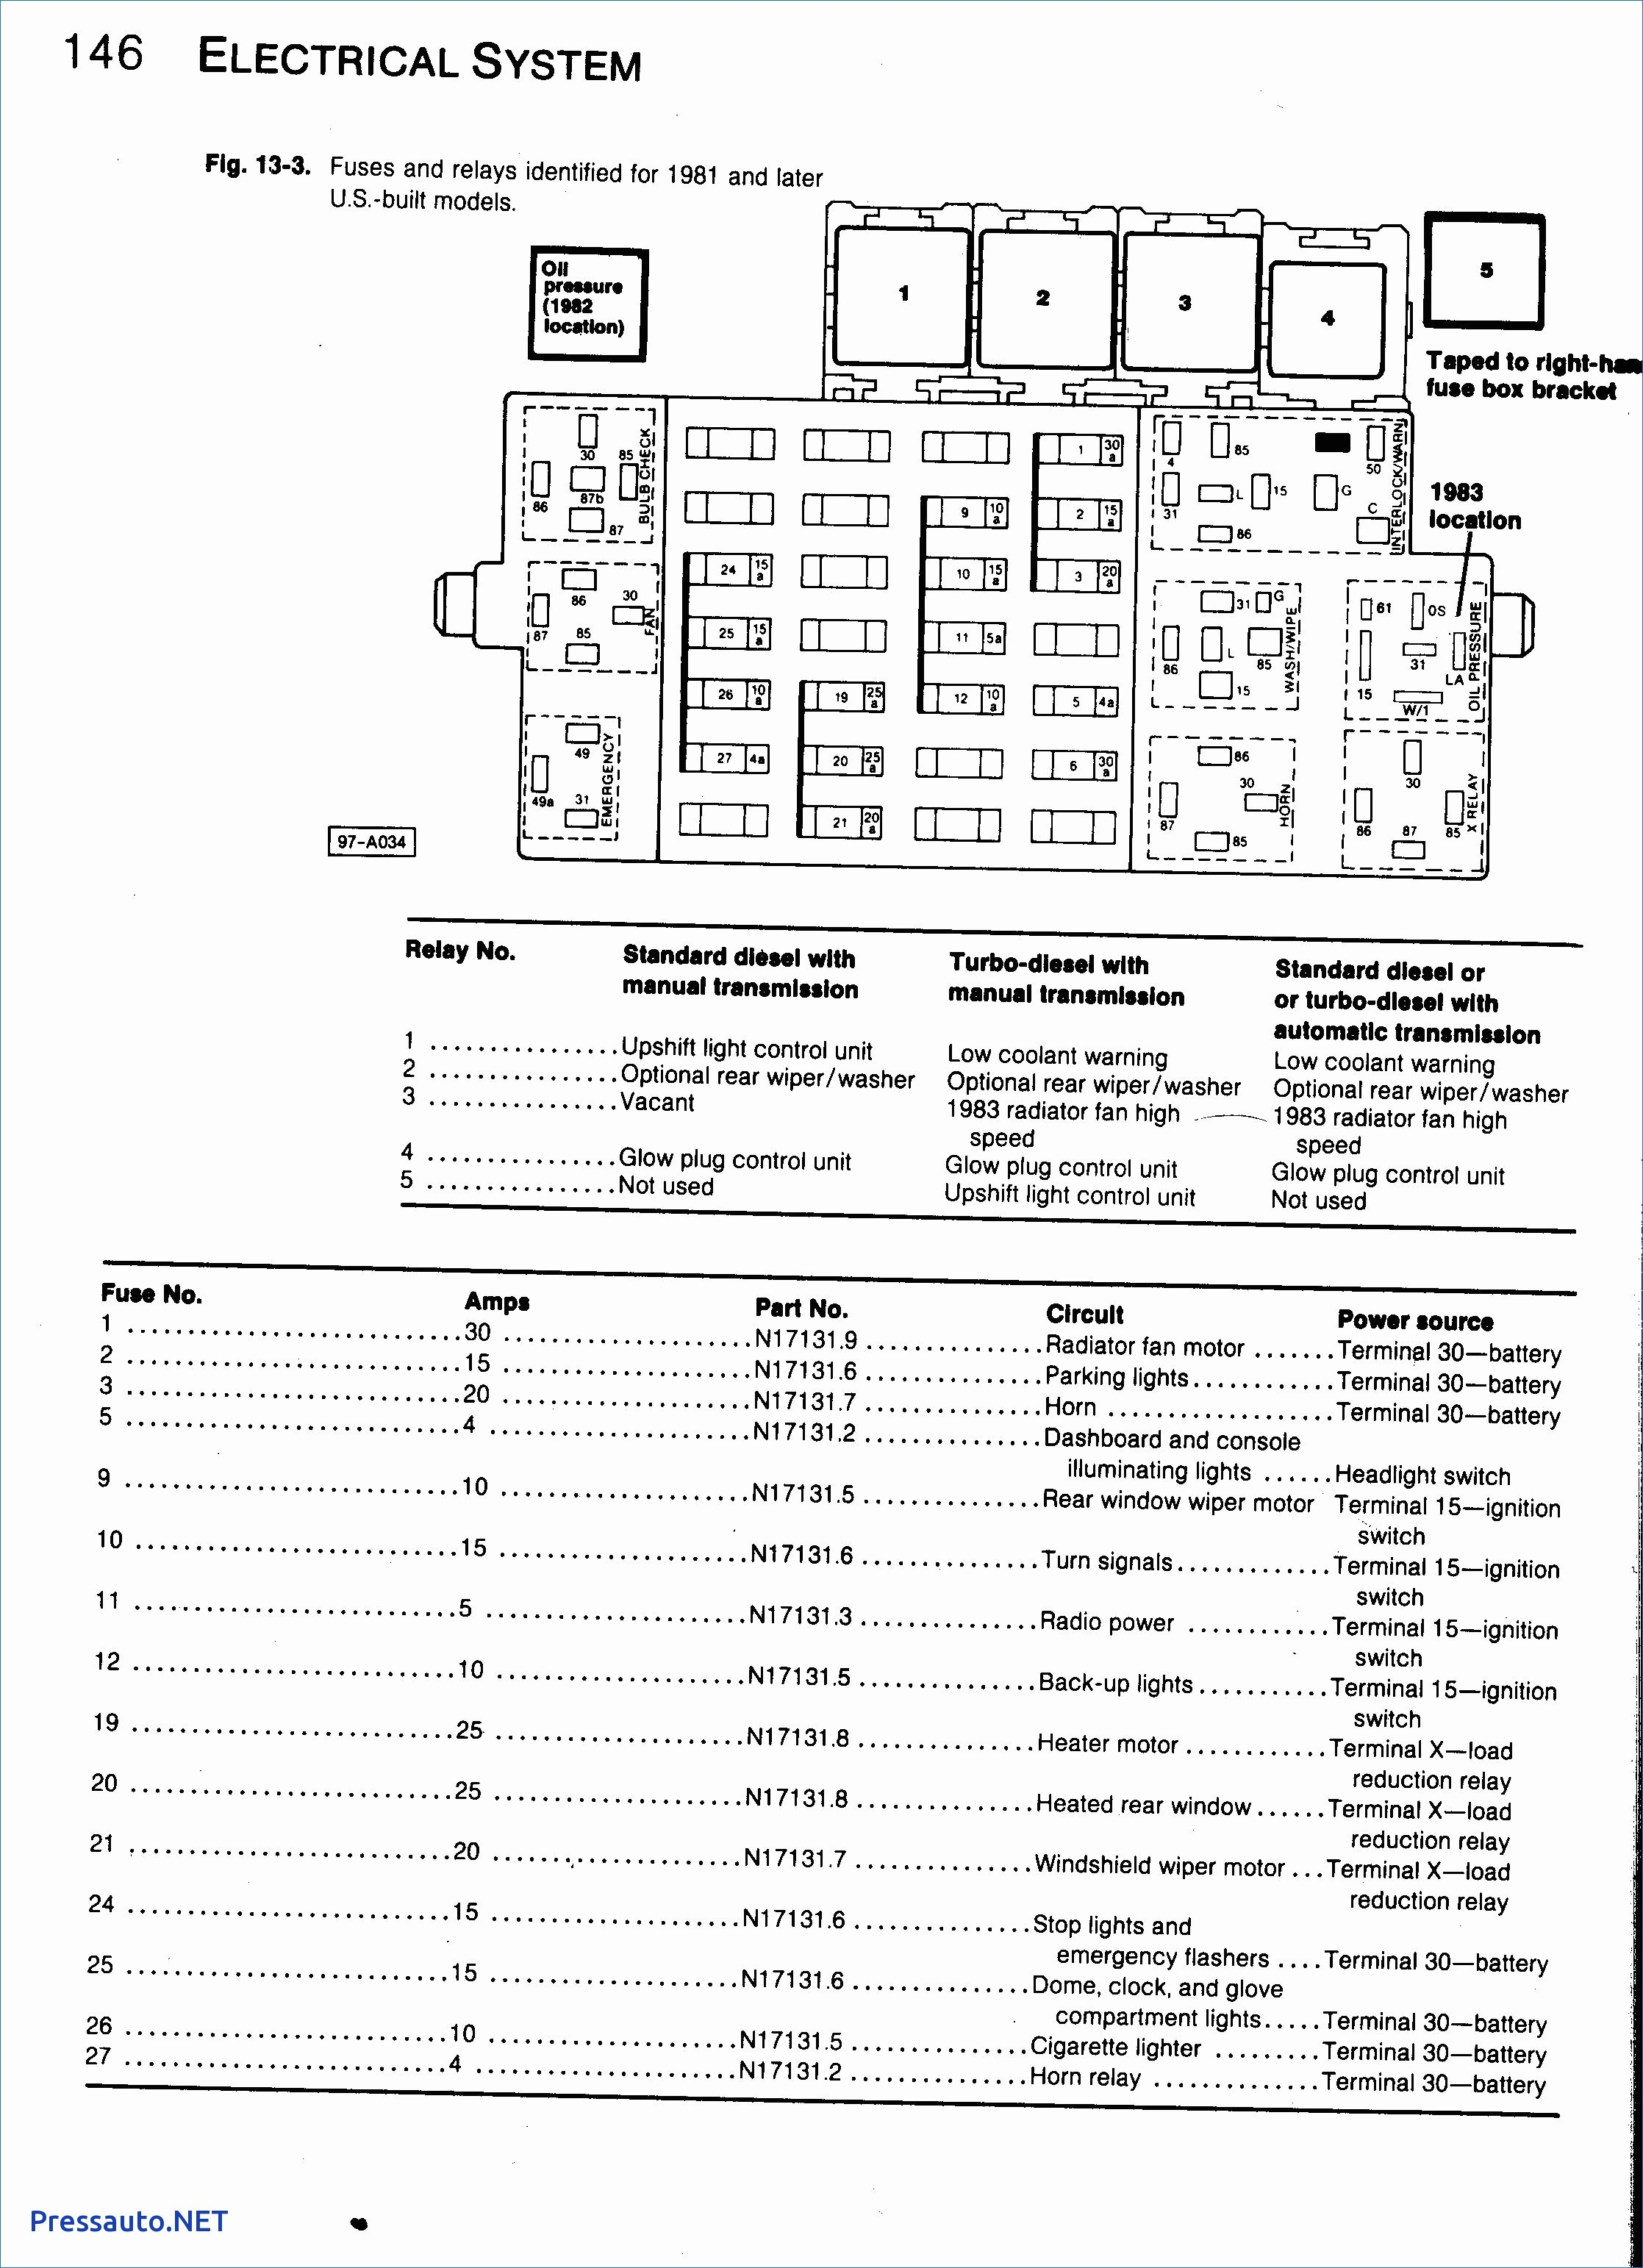 2002 vw jetta tdi engine diagram vr6 alternator wiring diagram